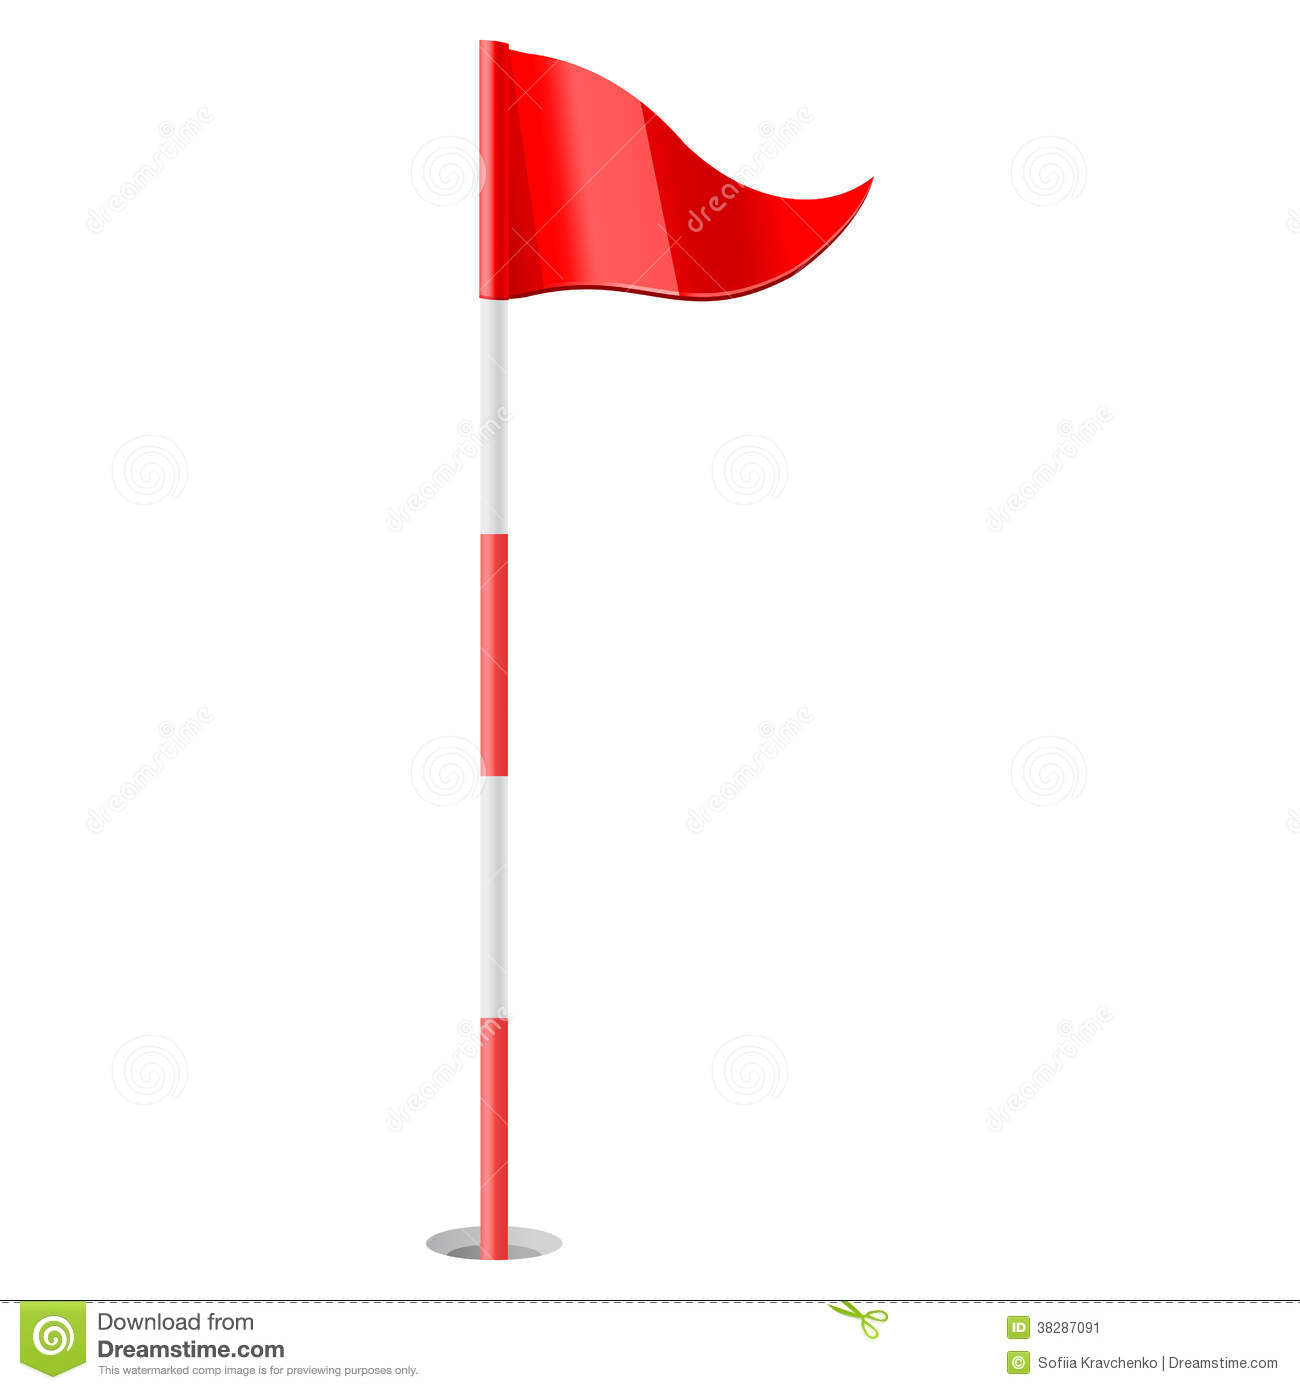 Red Golf Flag. Red Golf Flag. Golf Flag -Red golf flag. Red golf flag. Golf Flag Clipart-14